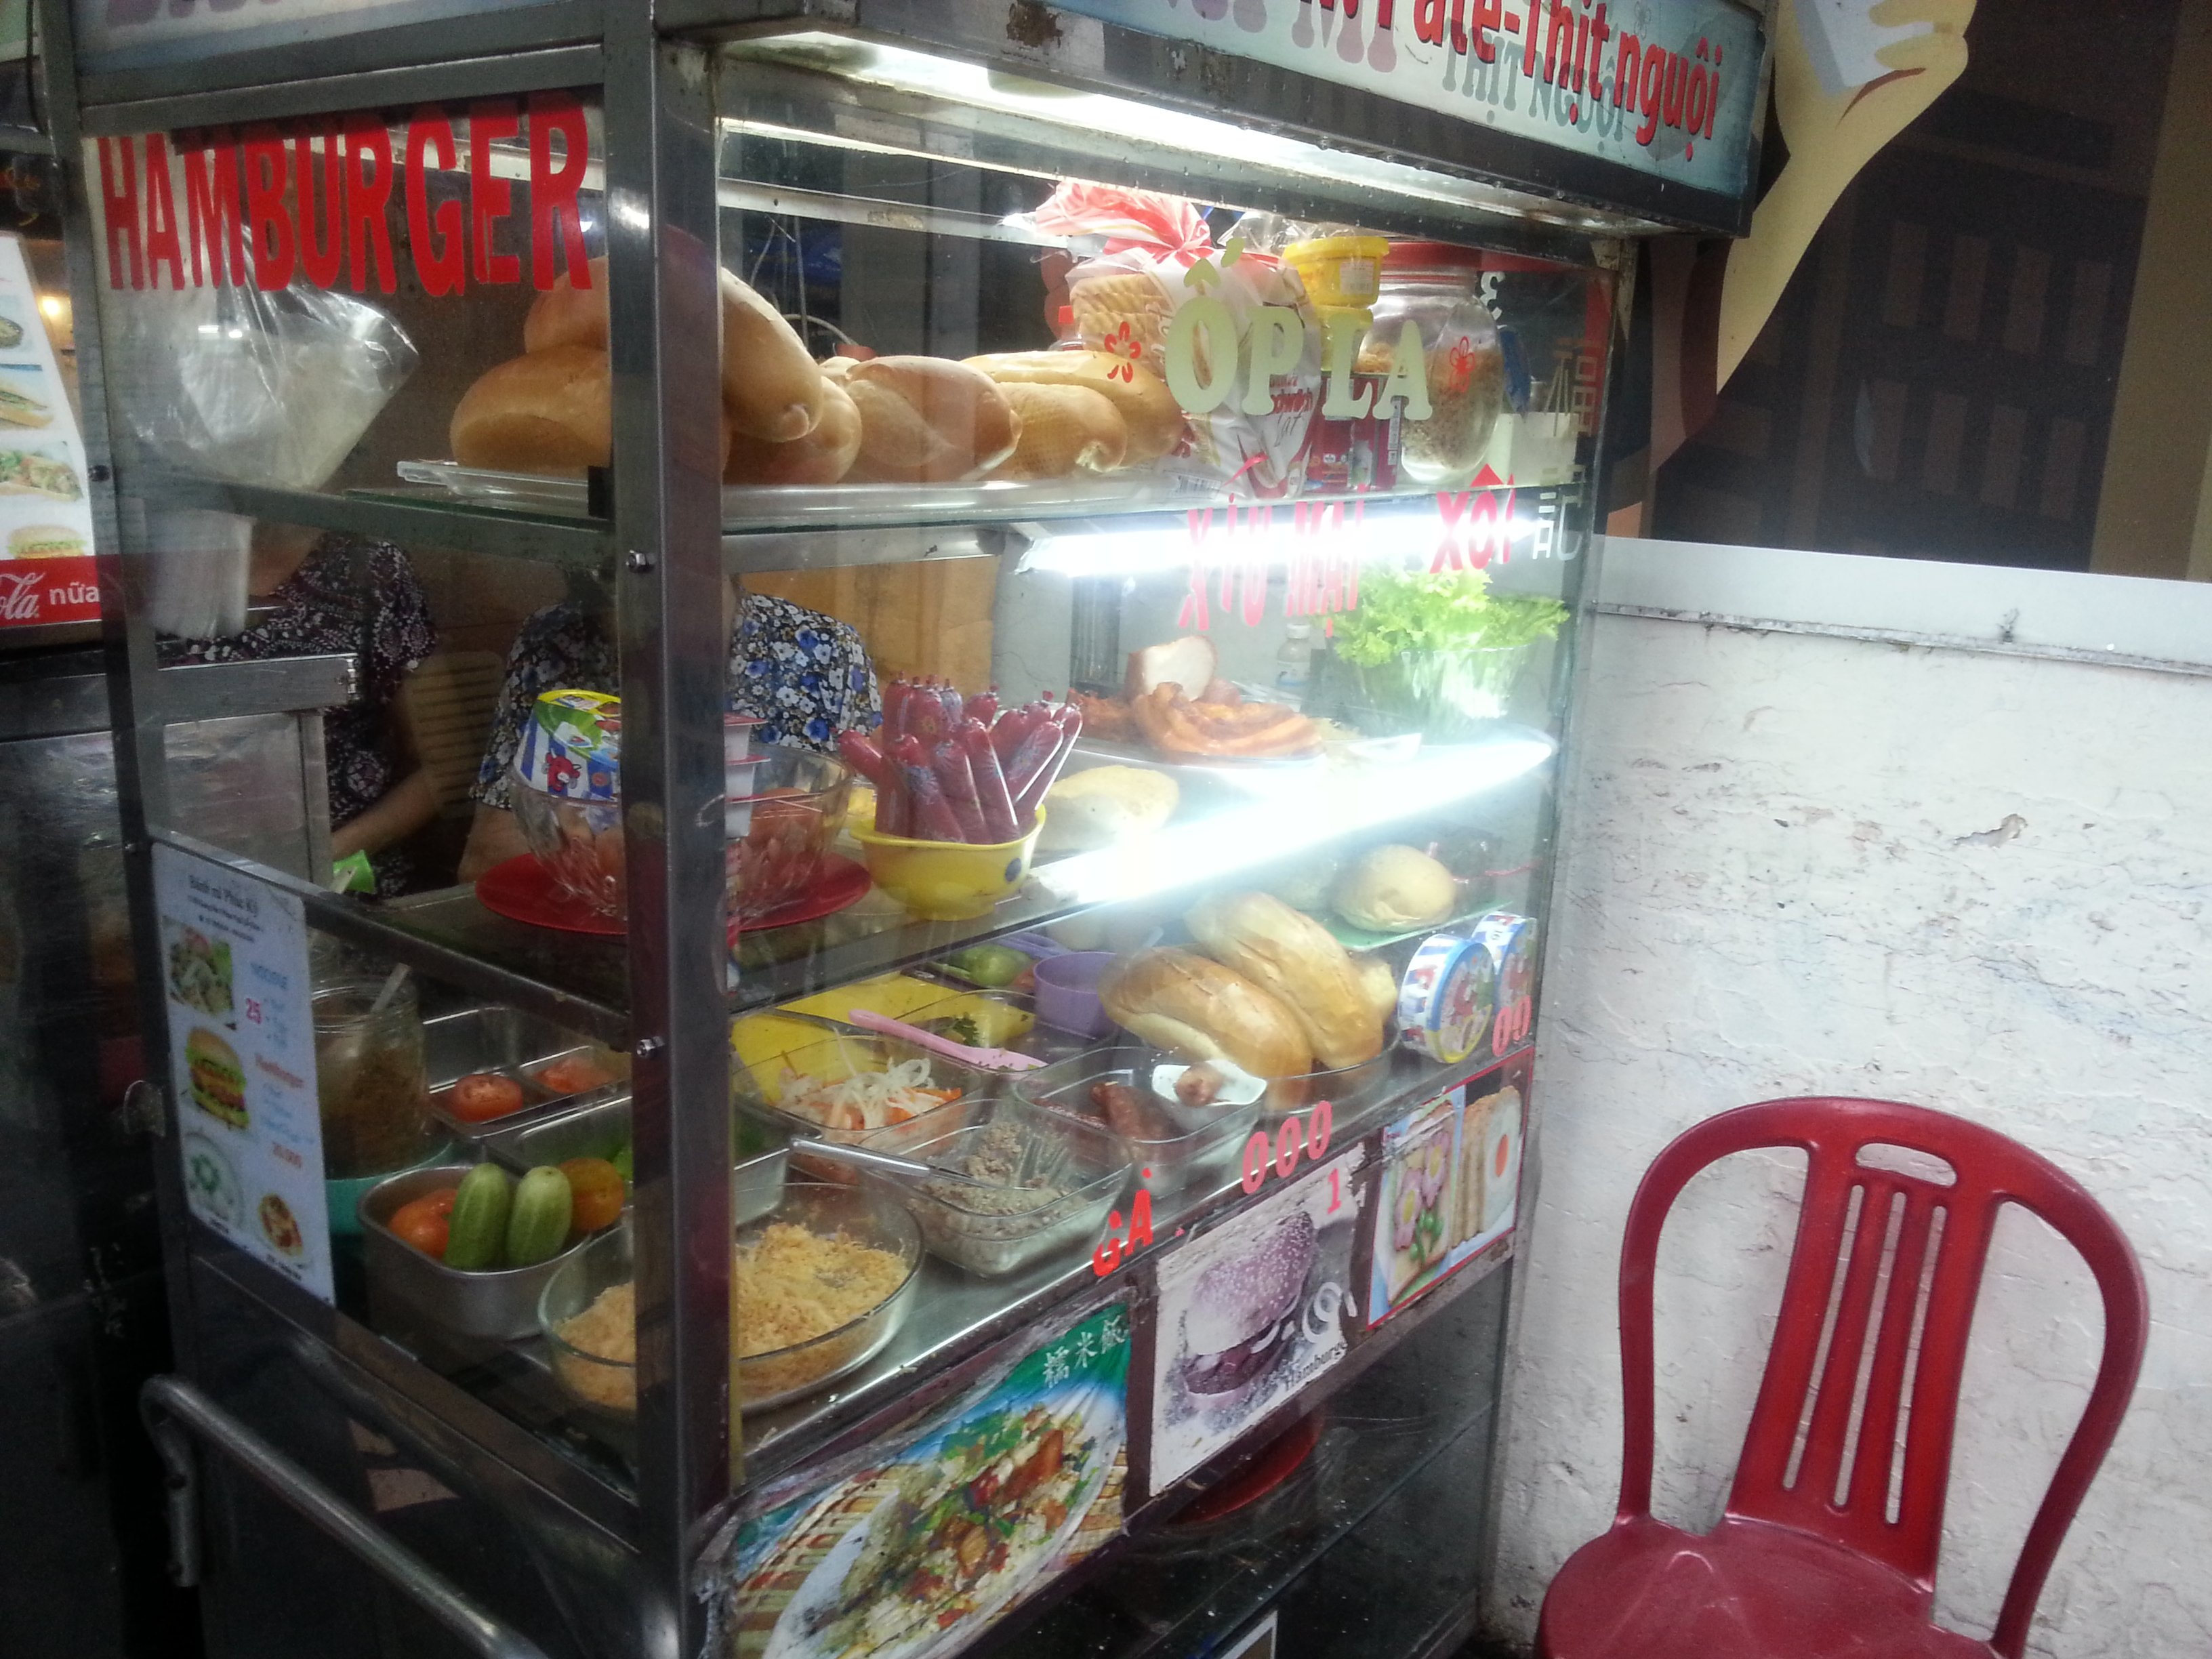 Banh mi stall in Ho Chi Minh City